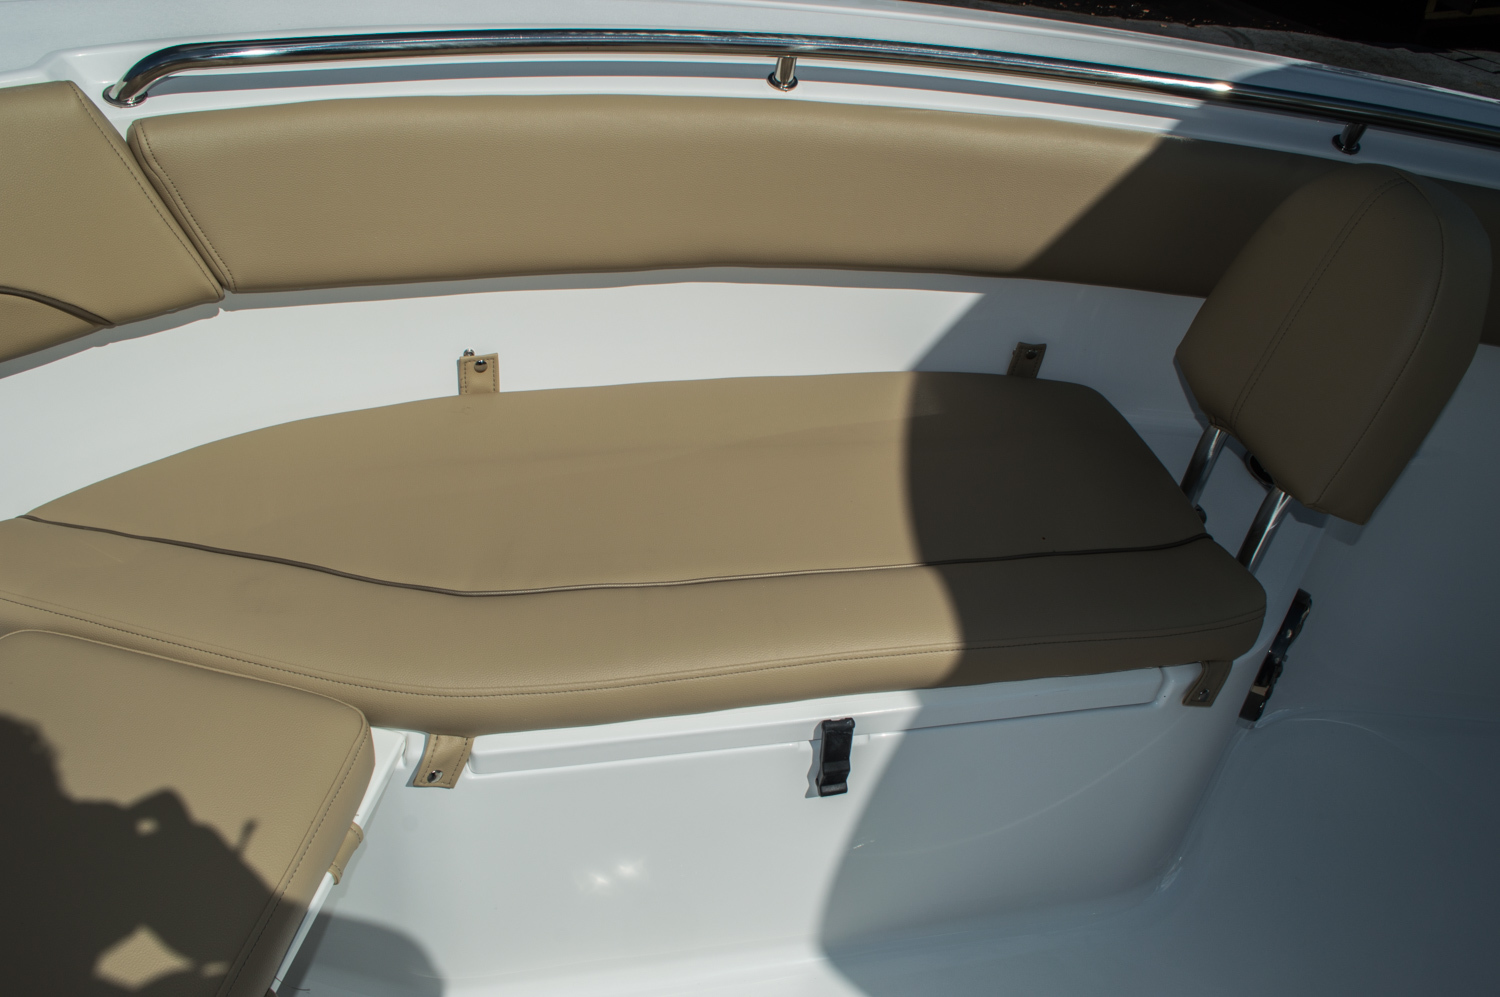 Thumbnail 14 for New 2016 Sportsman Heritage 251 Center Console boat for sale in Miami, FL